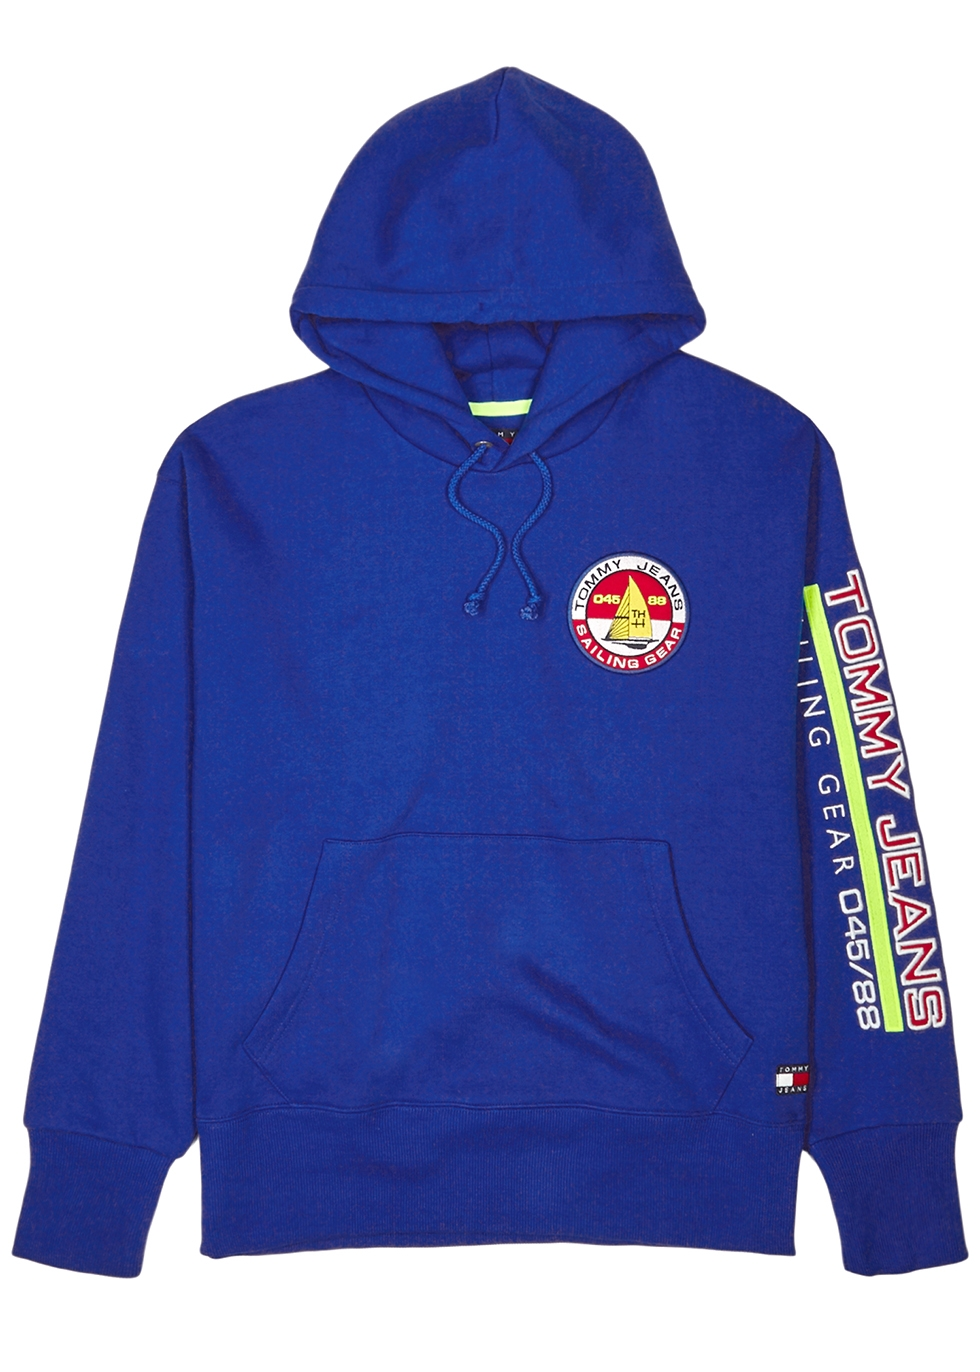 TOMMY JEANS 90S Sailing Capsule Back And Sleeve Logo Hoodie In Bright Blue - Blue